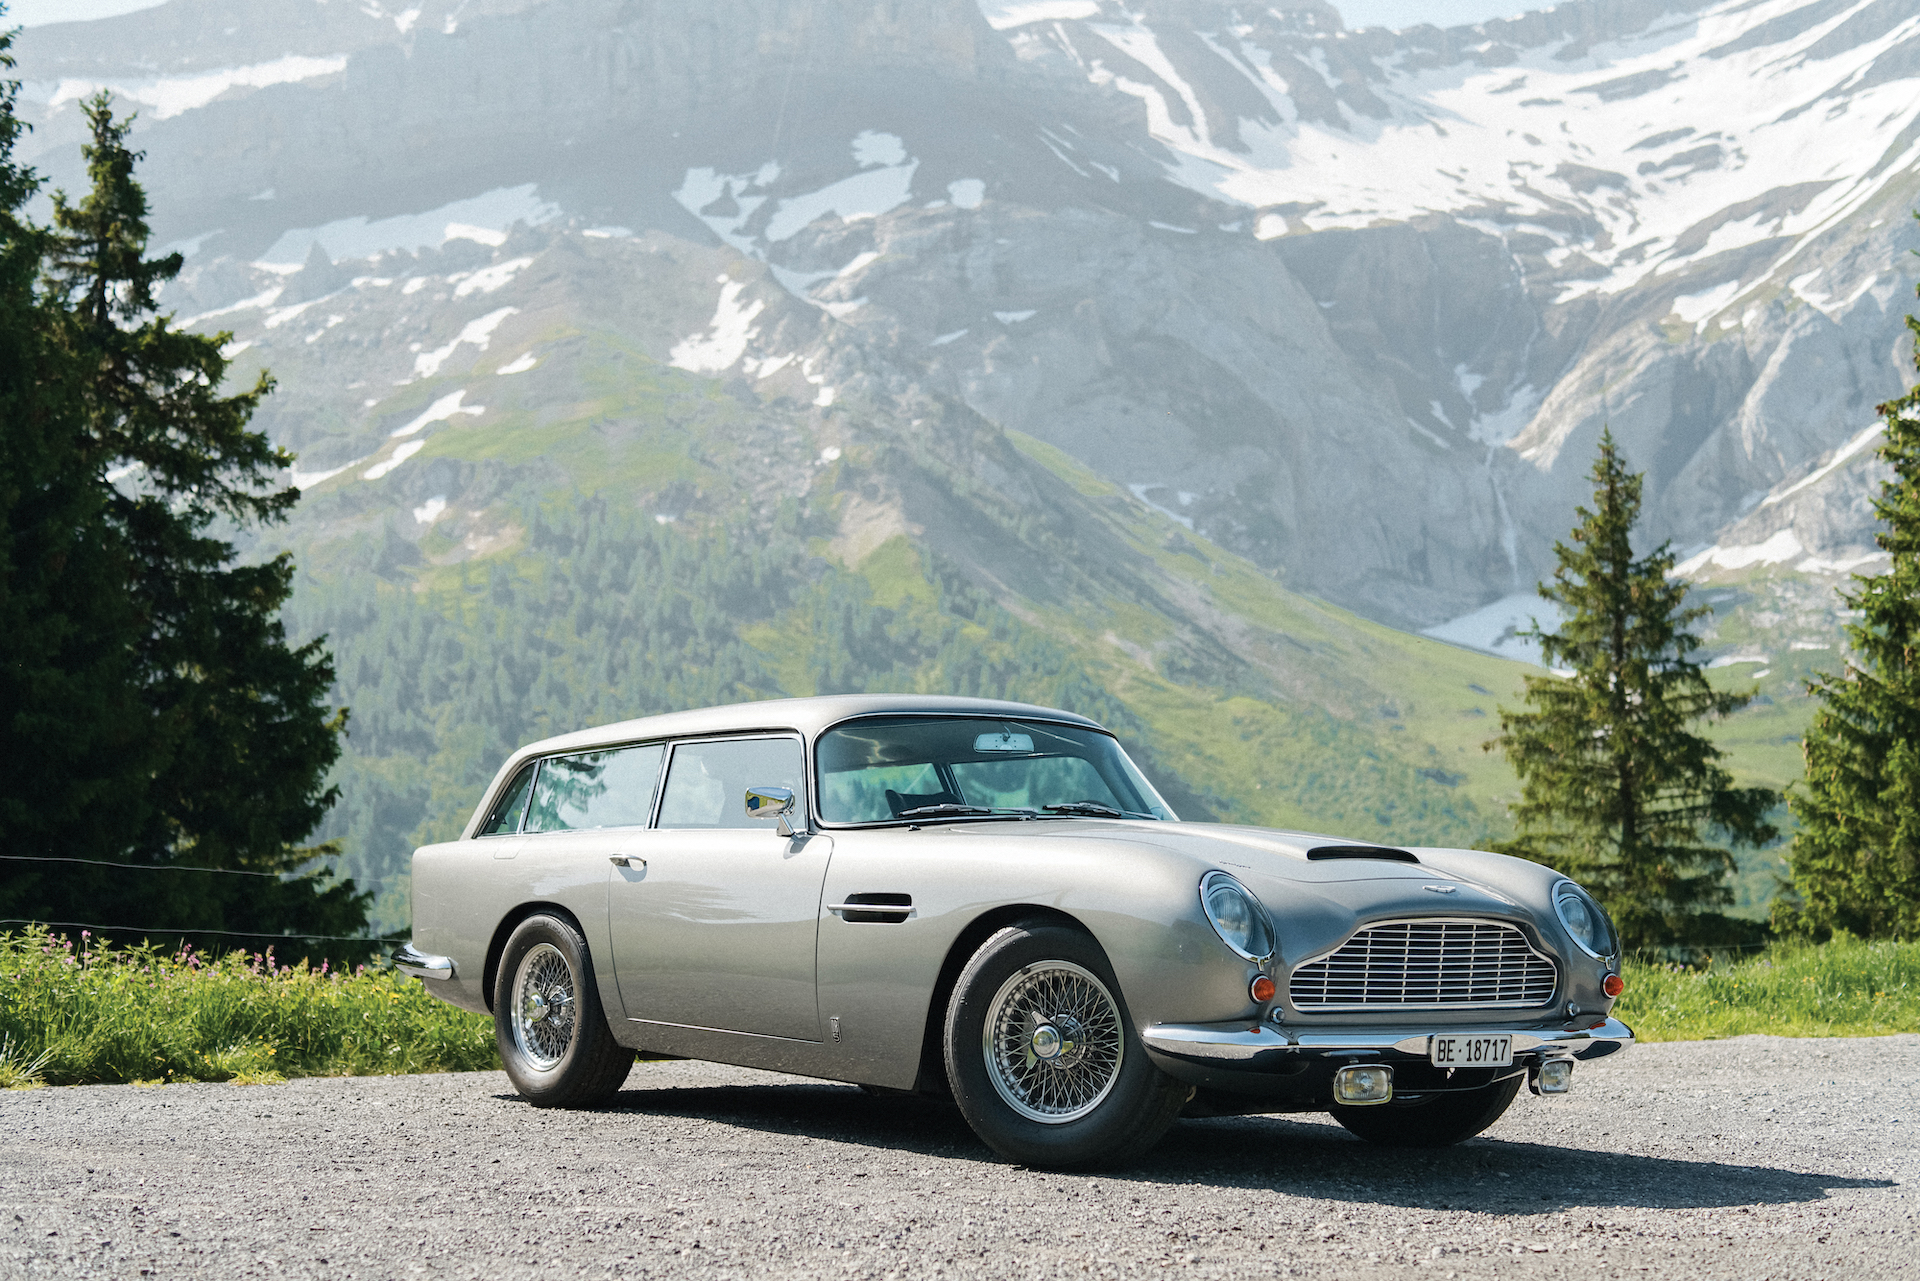 Aston Martin Db5 Shooting Brake Other Rare Models Head To Auction